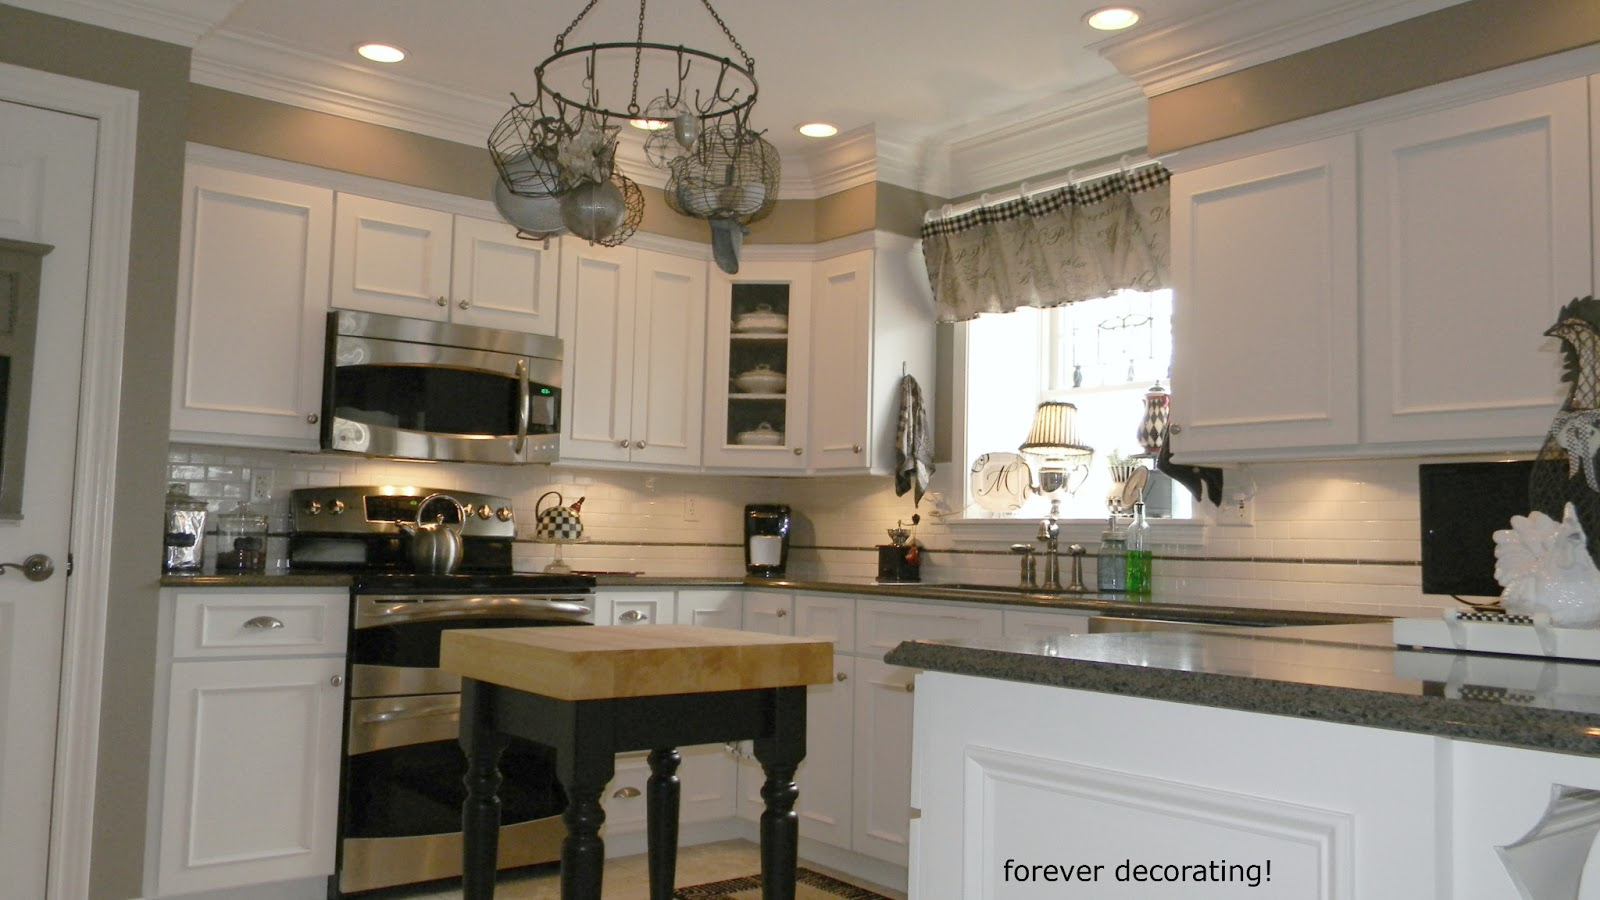 Forever Decorating!: Dramatic Kitchen Make-over